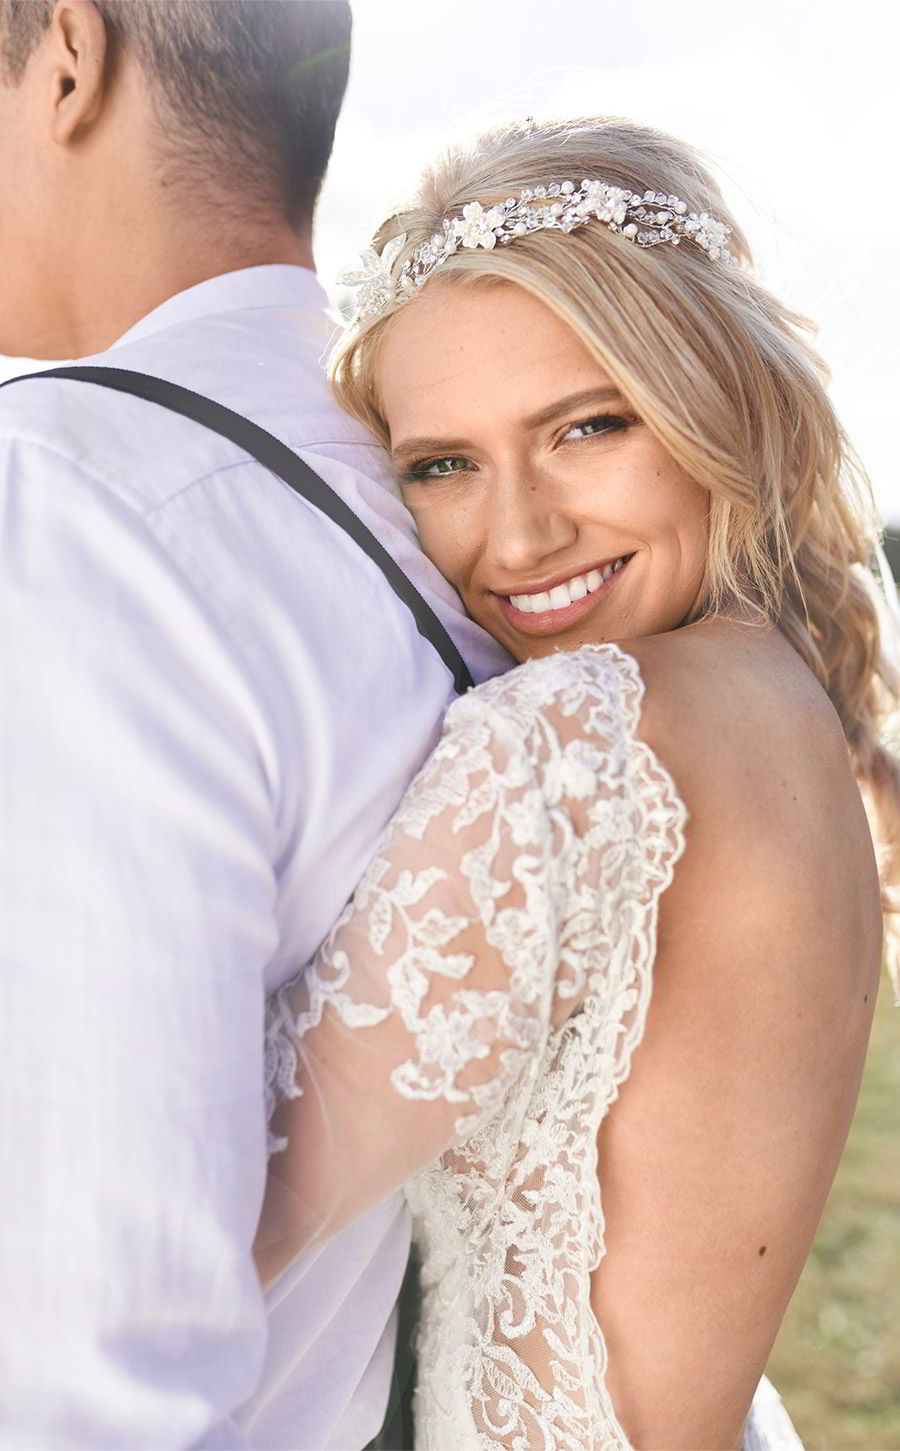 lavender field wedding photo shoot adorn invitations purple gold boho luxe inspiration romantic low back wedding dress